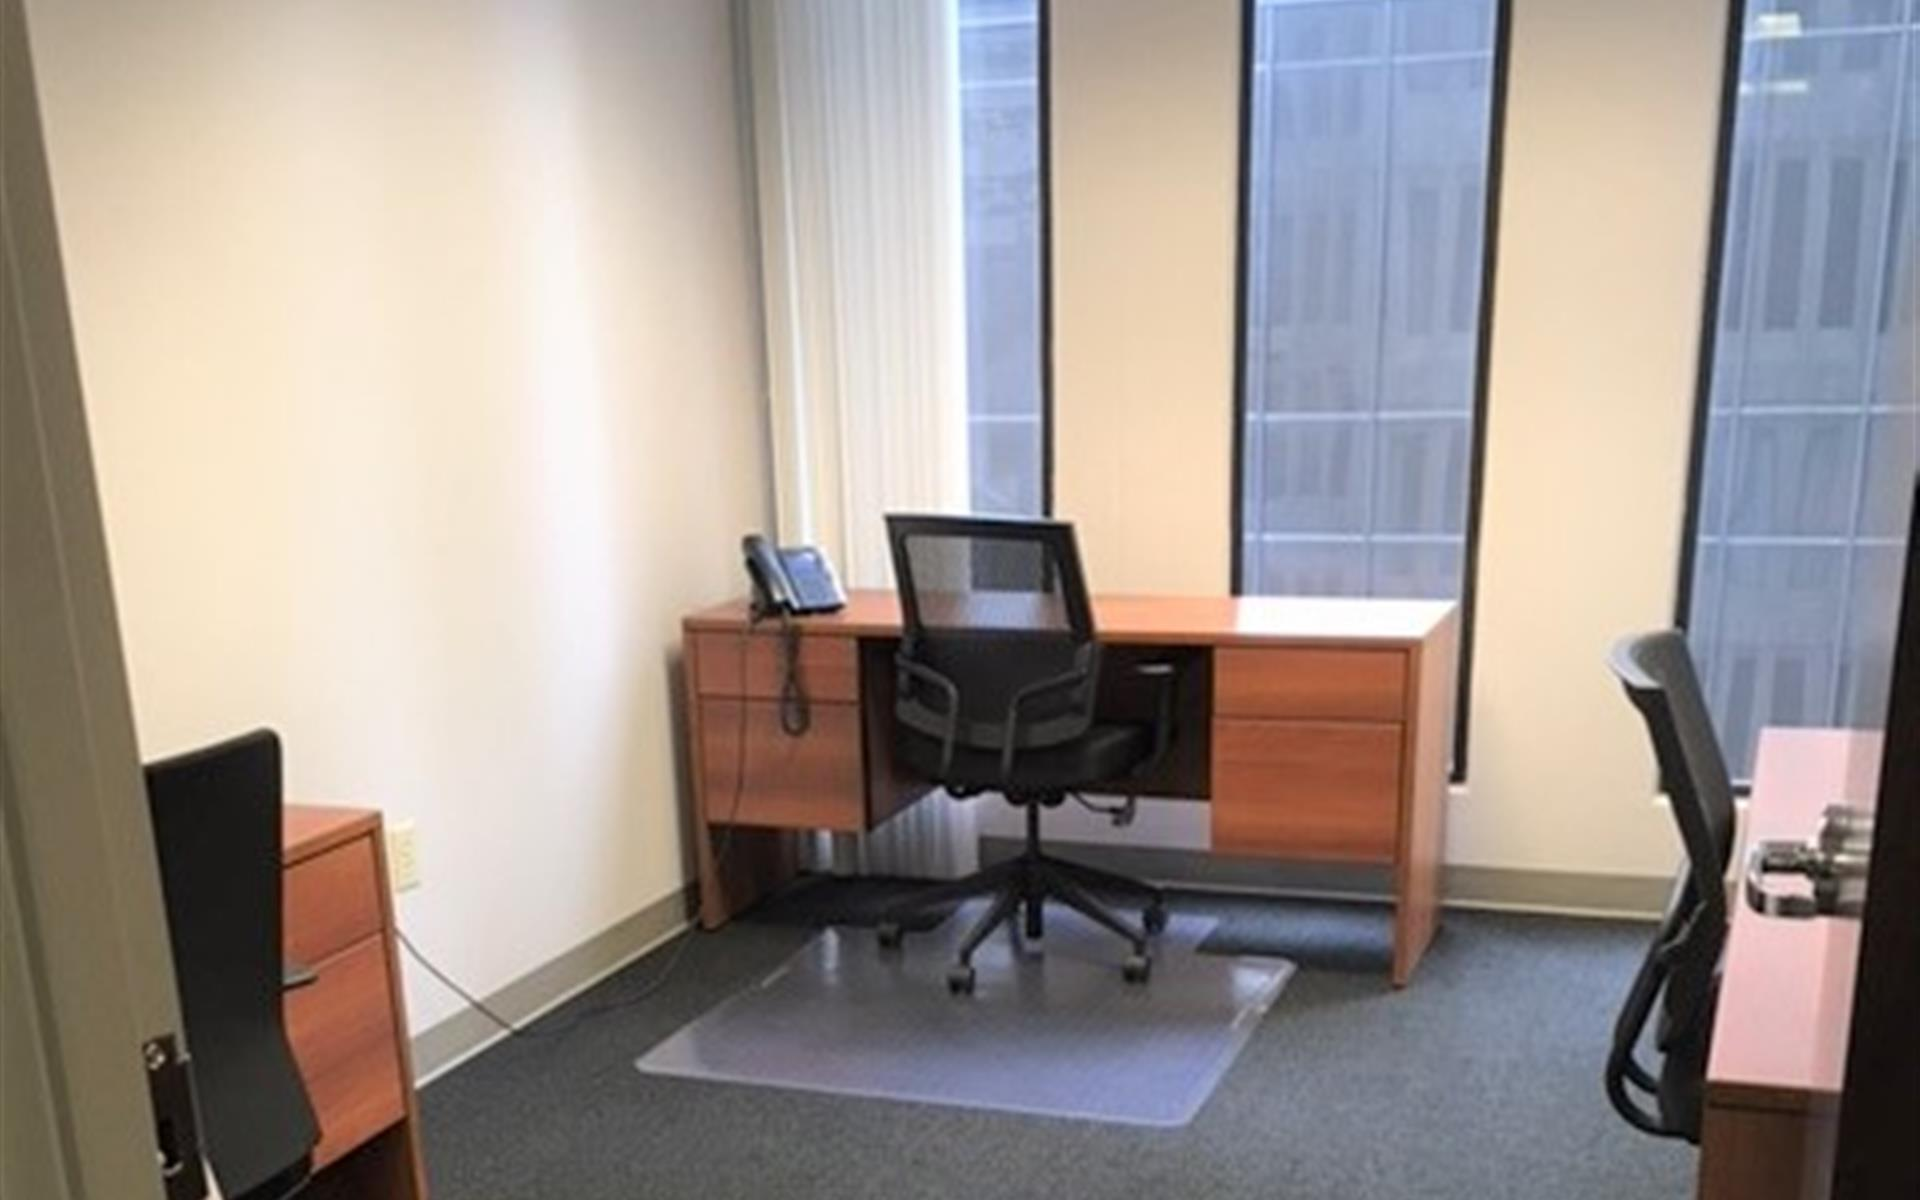 Peachtree Offices at Downtown, Inc. - Coworking Desk 2